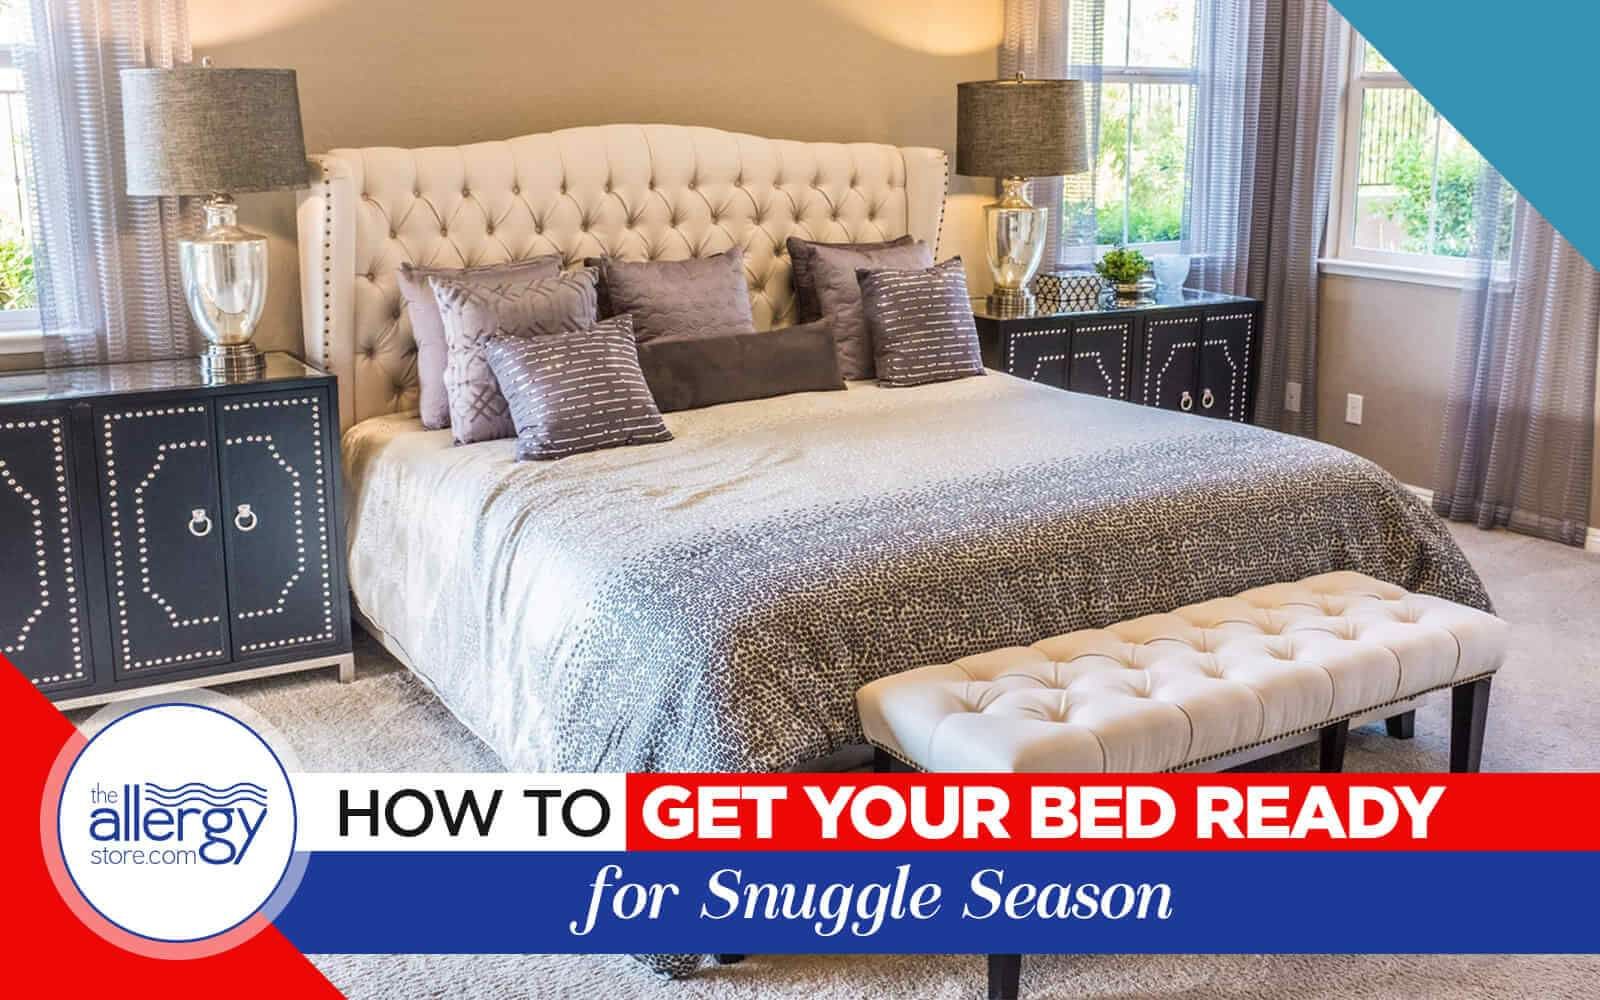 Fall Bedding…Time to Get Your Bed Ready for Snuggle Season